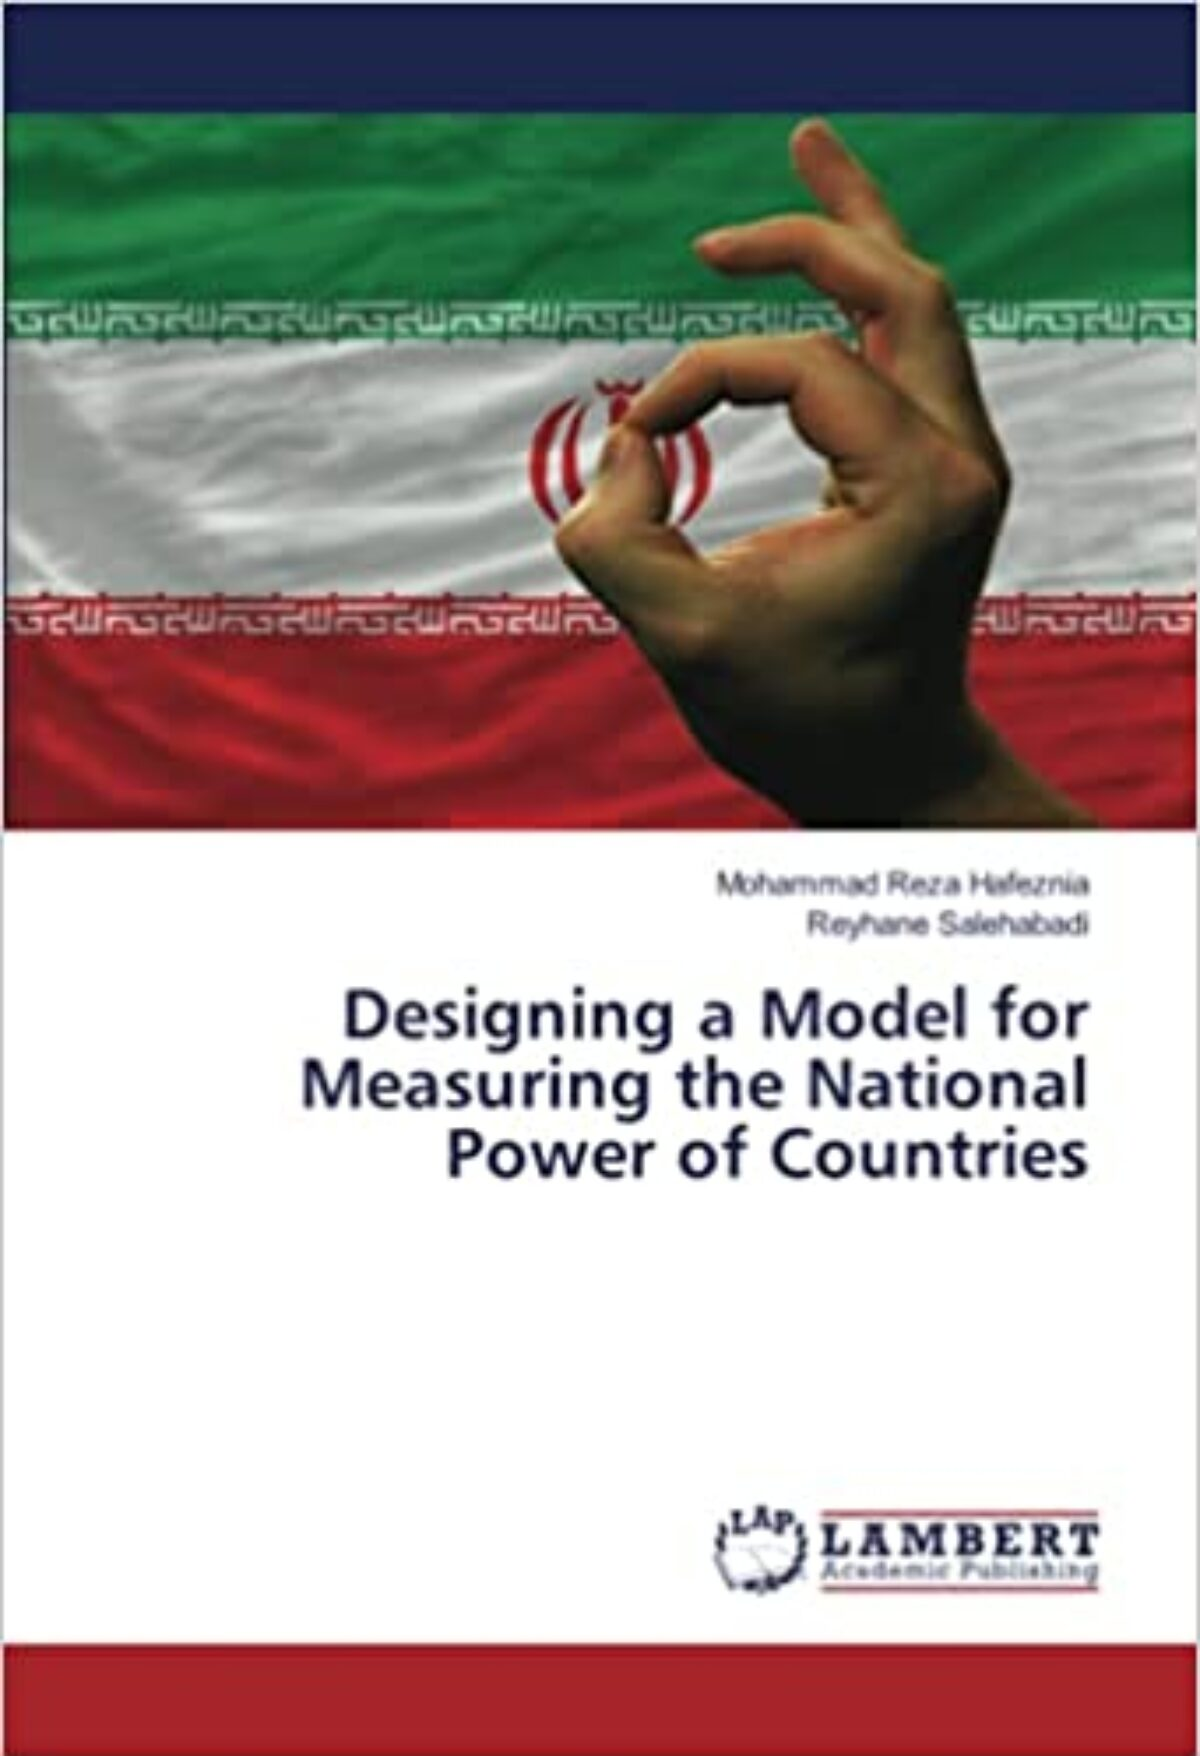 Designing a model for measuring the national power of countries